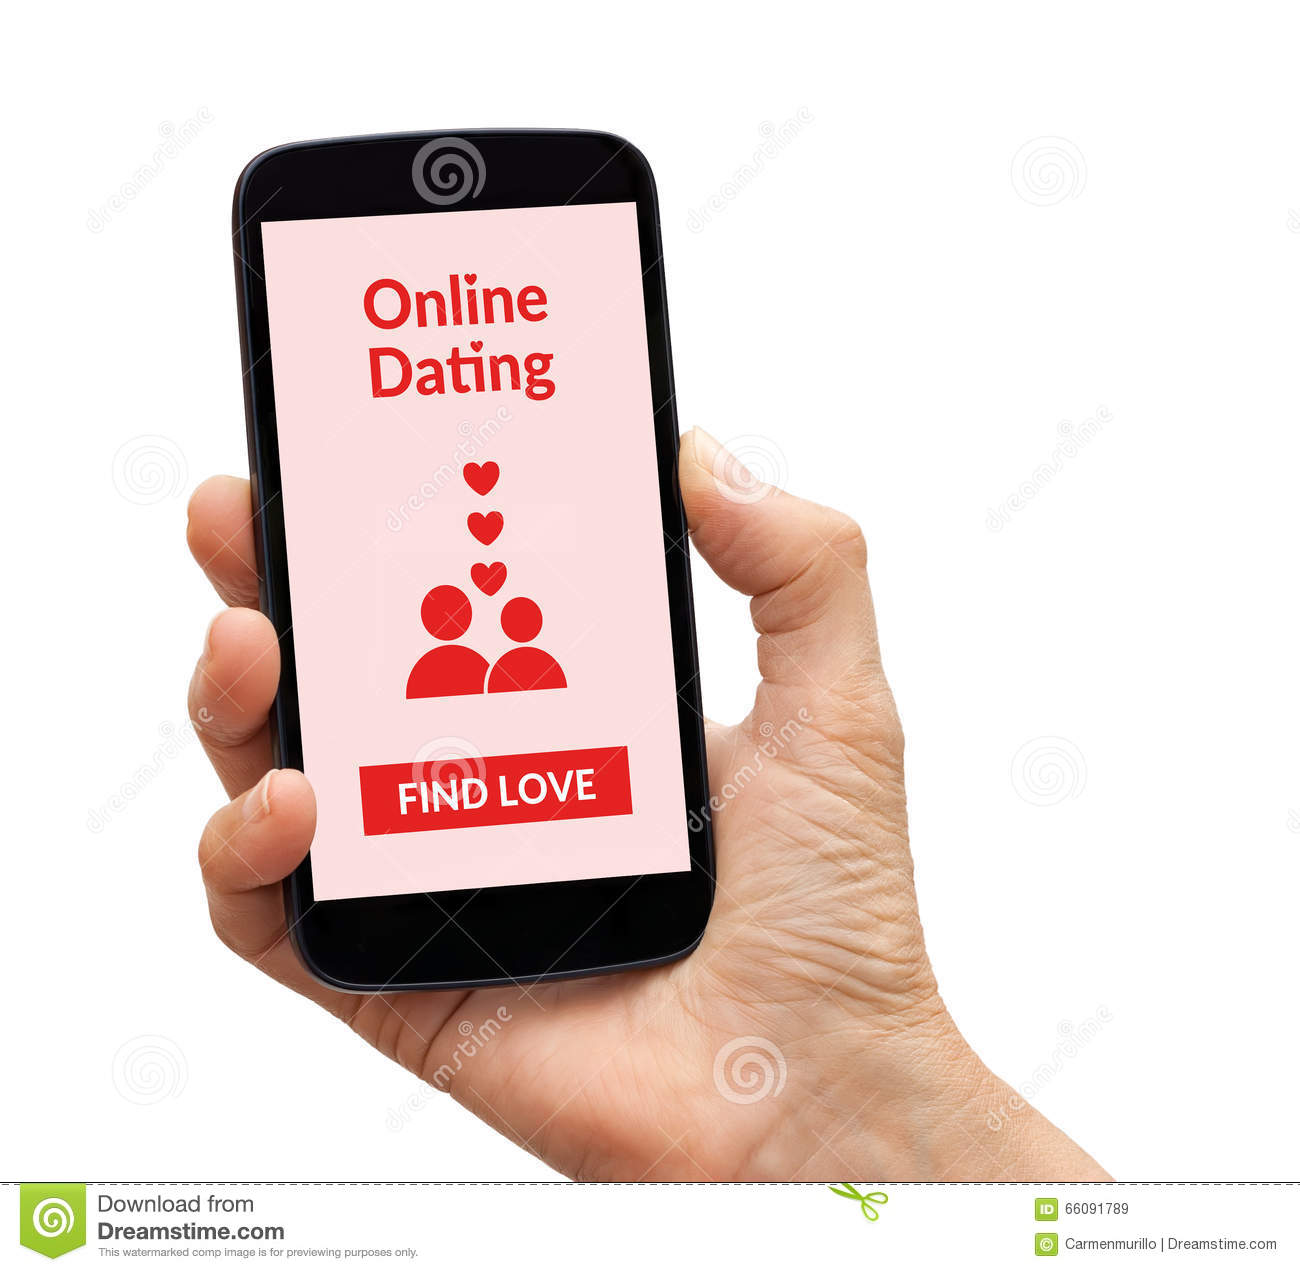 Why is a Dating App the Best Option for you